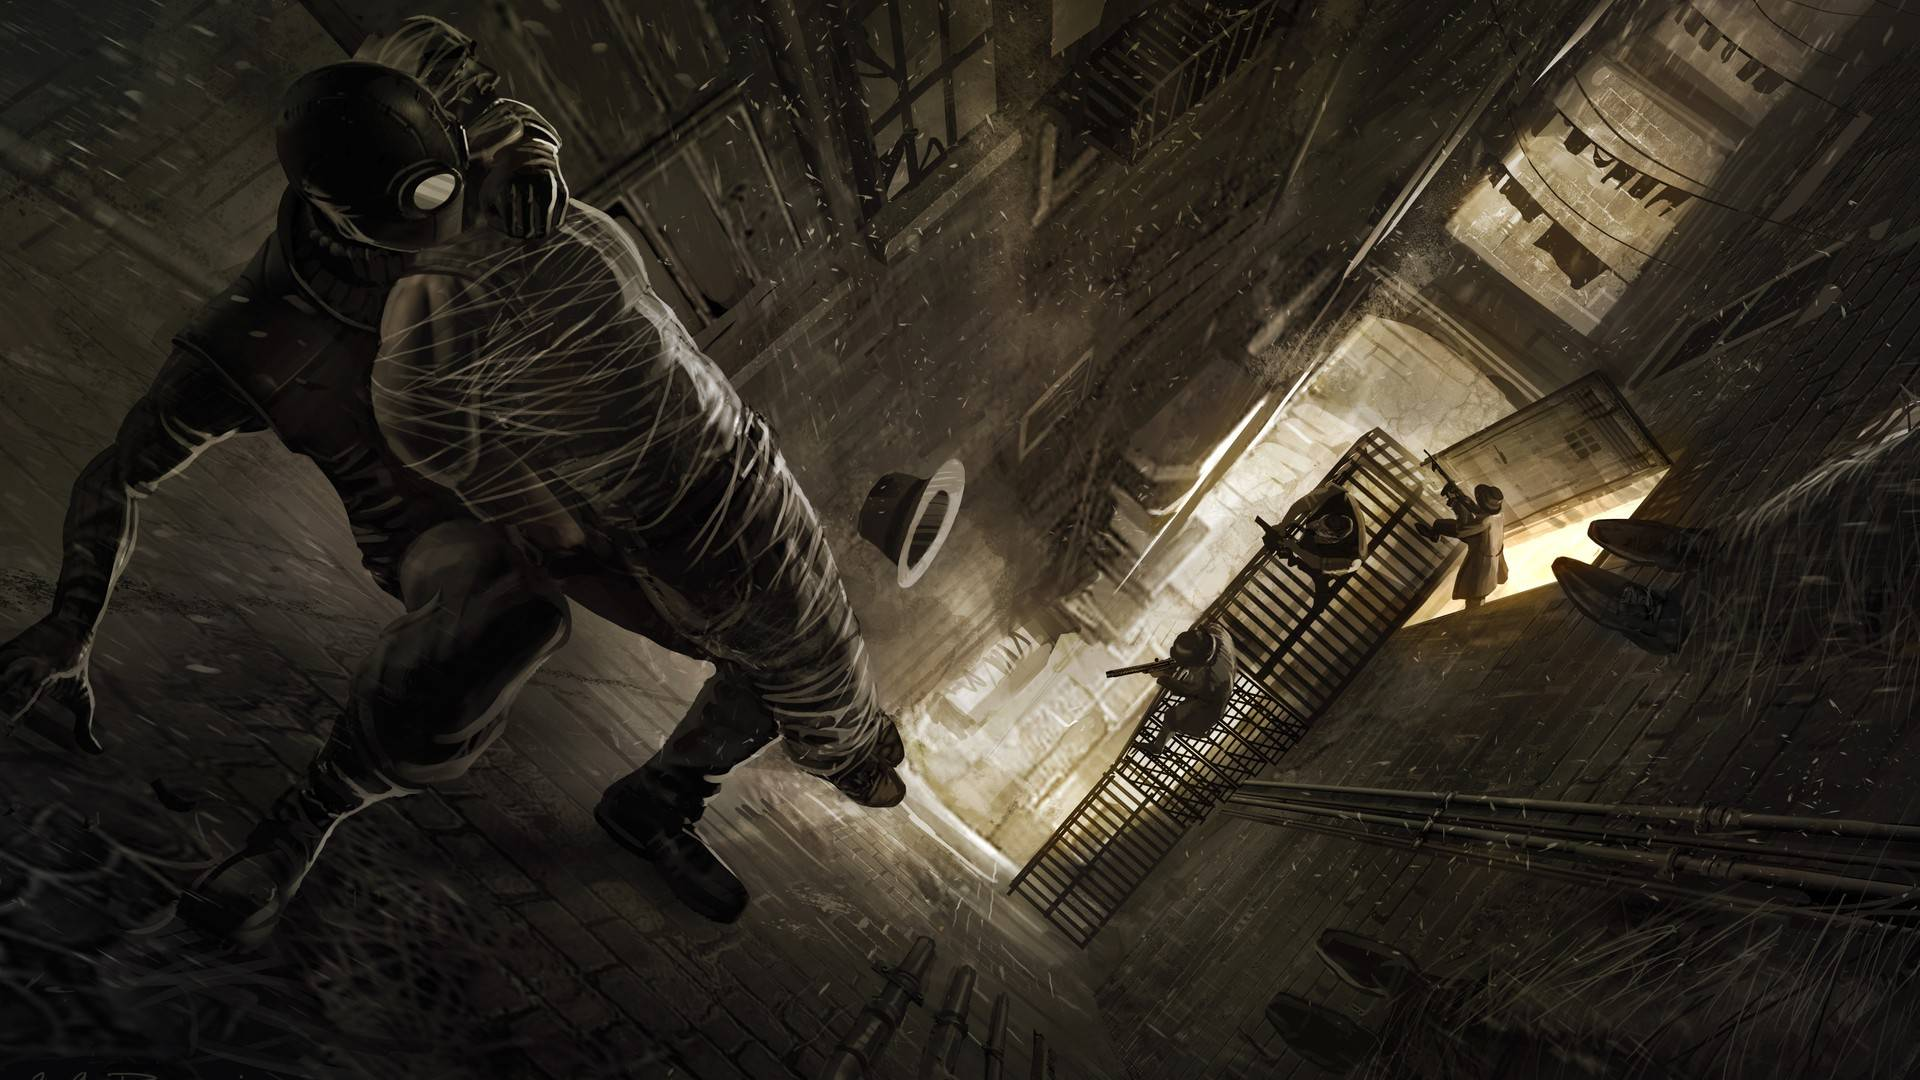 Spider Man Noir Wallpaper - WallpaperSafari